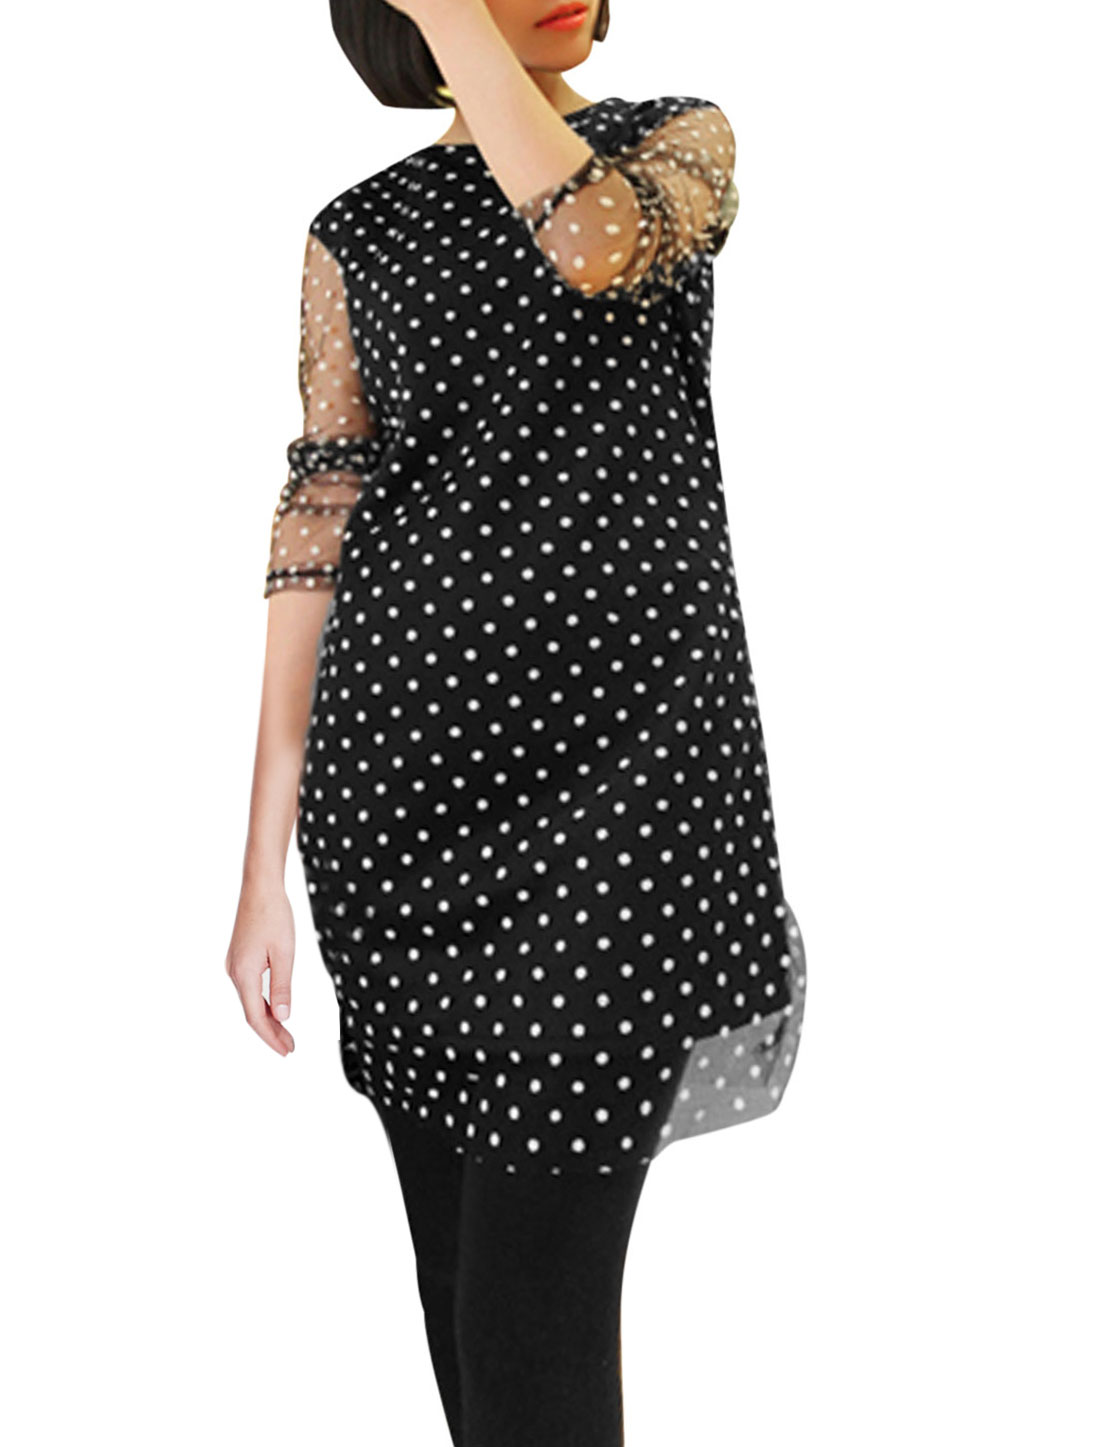 Lady Round Neck Dots Pattern Cozy Fit Mesh Tunic Top Black XS